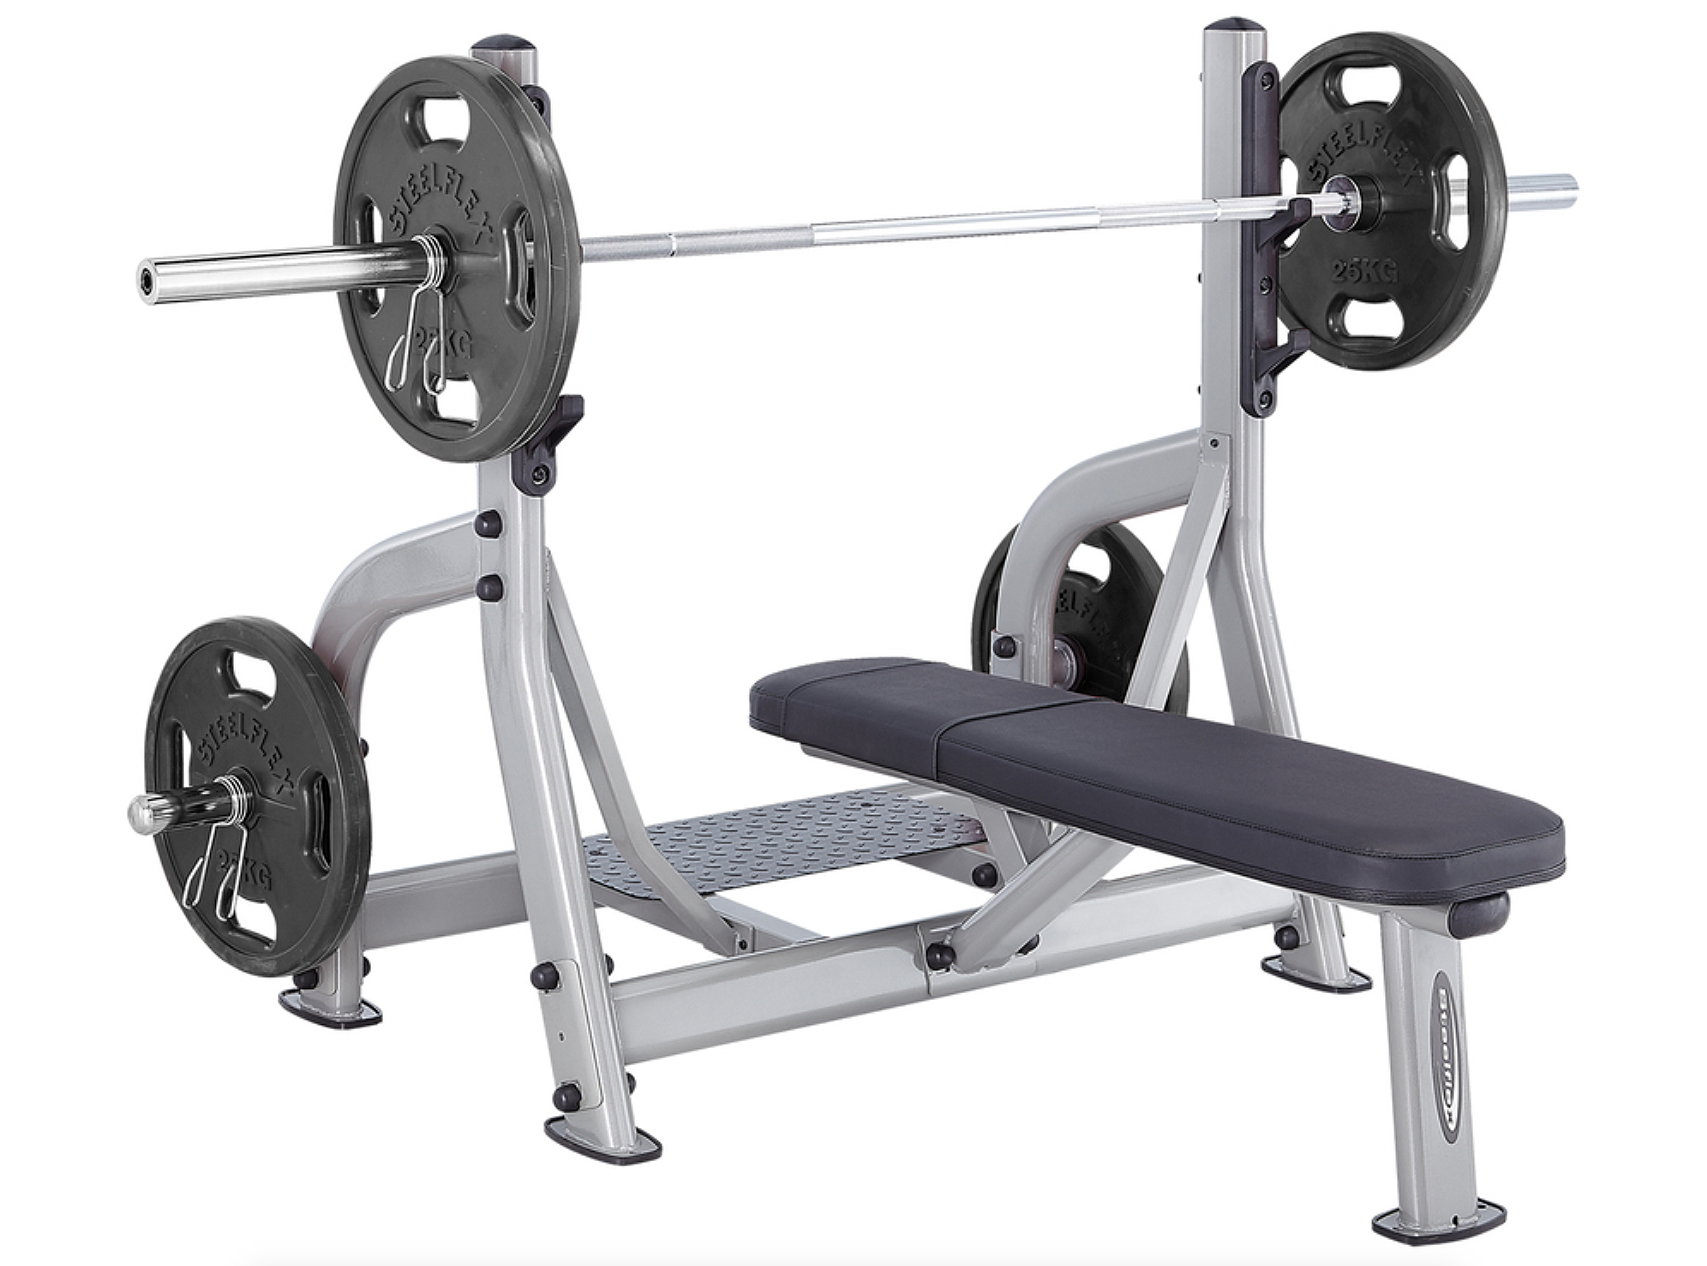 Steelflex Olympic Flat Bench Chest Press  - Plates Included